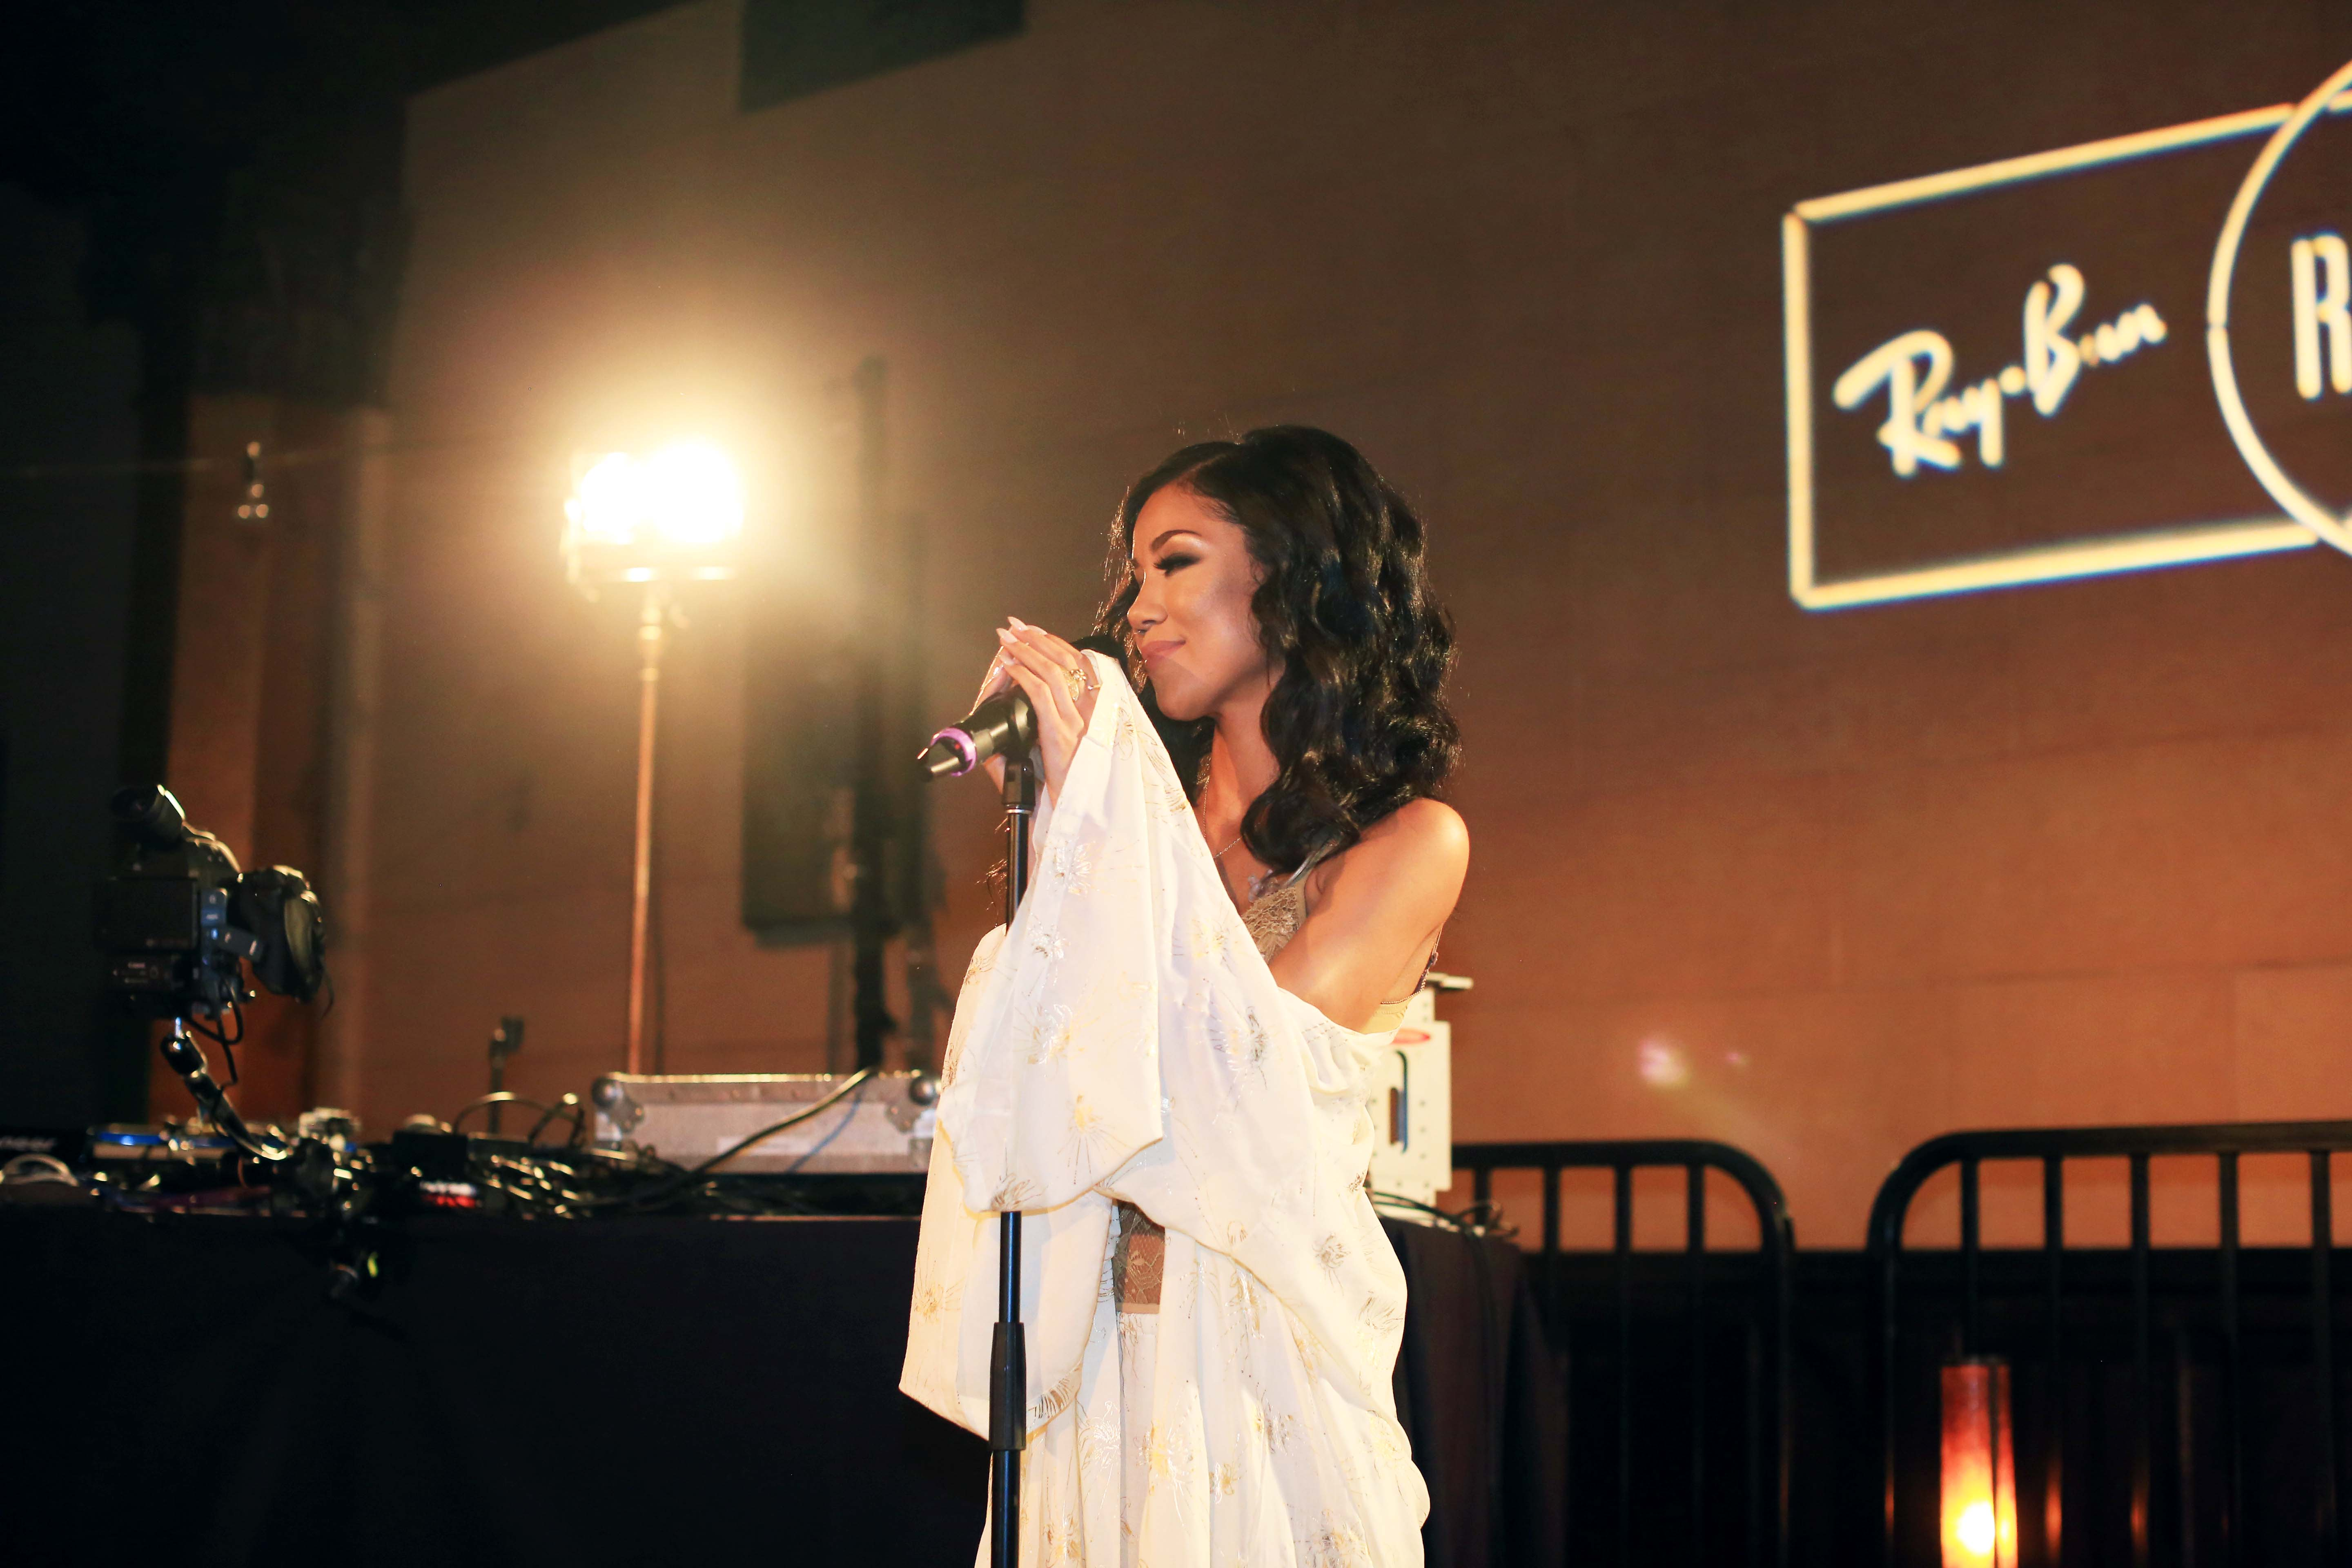 jhenelive